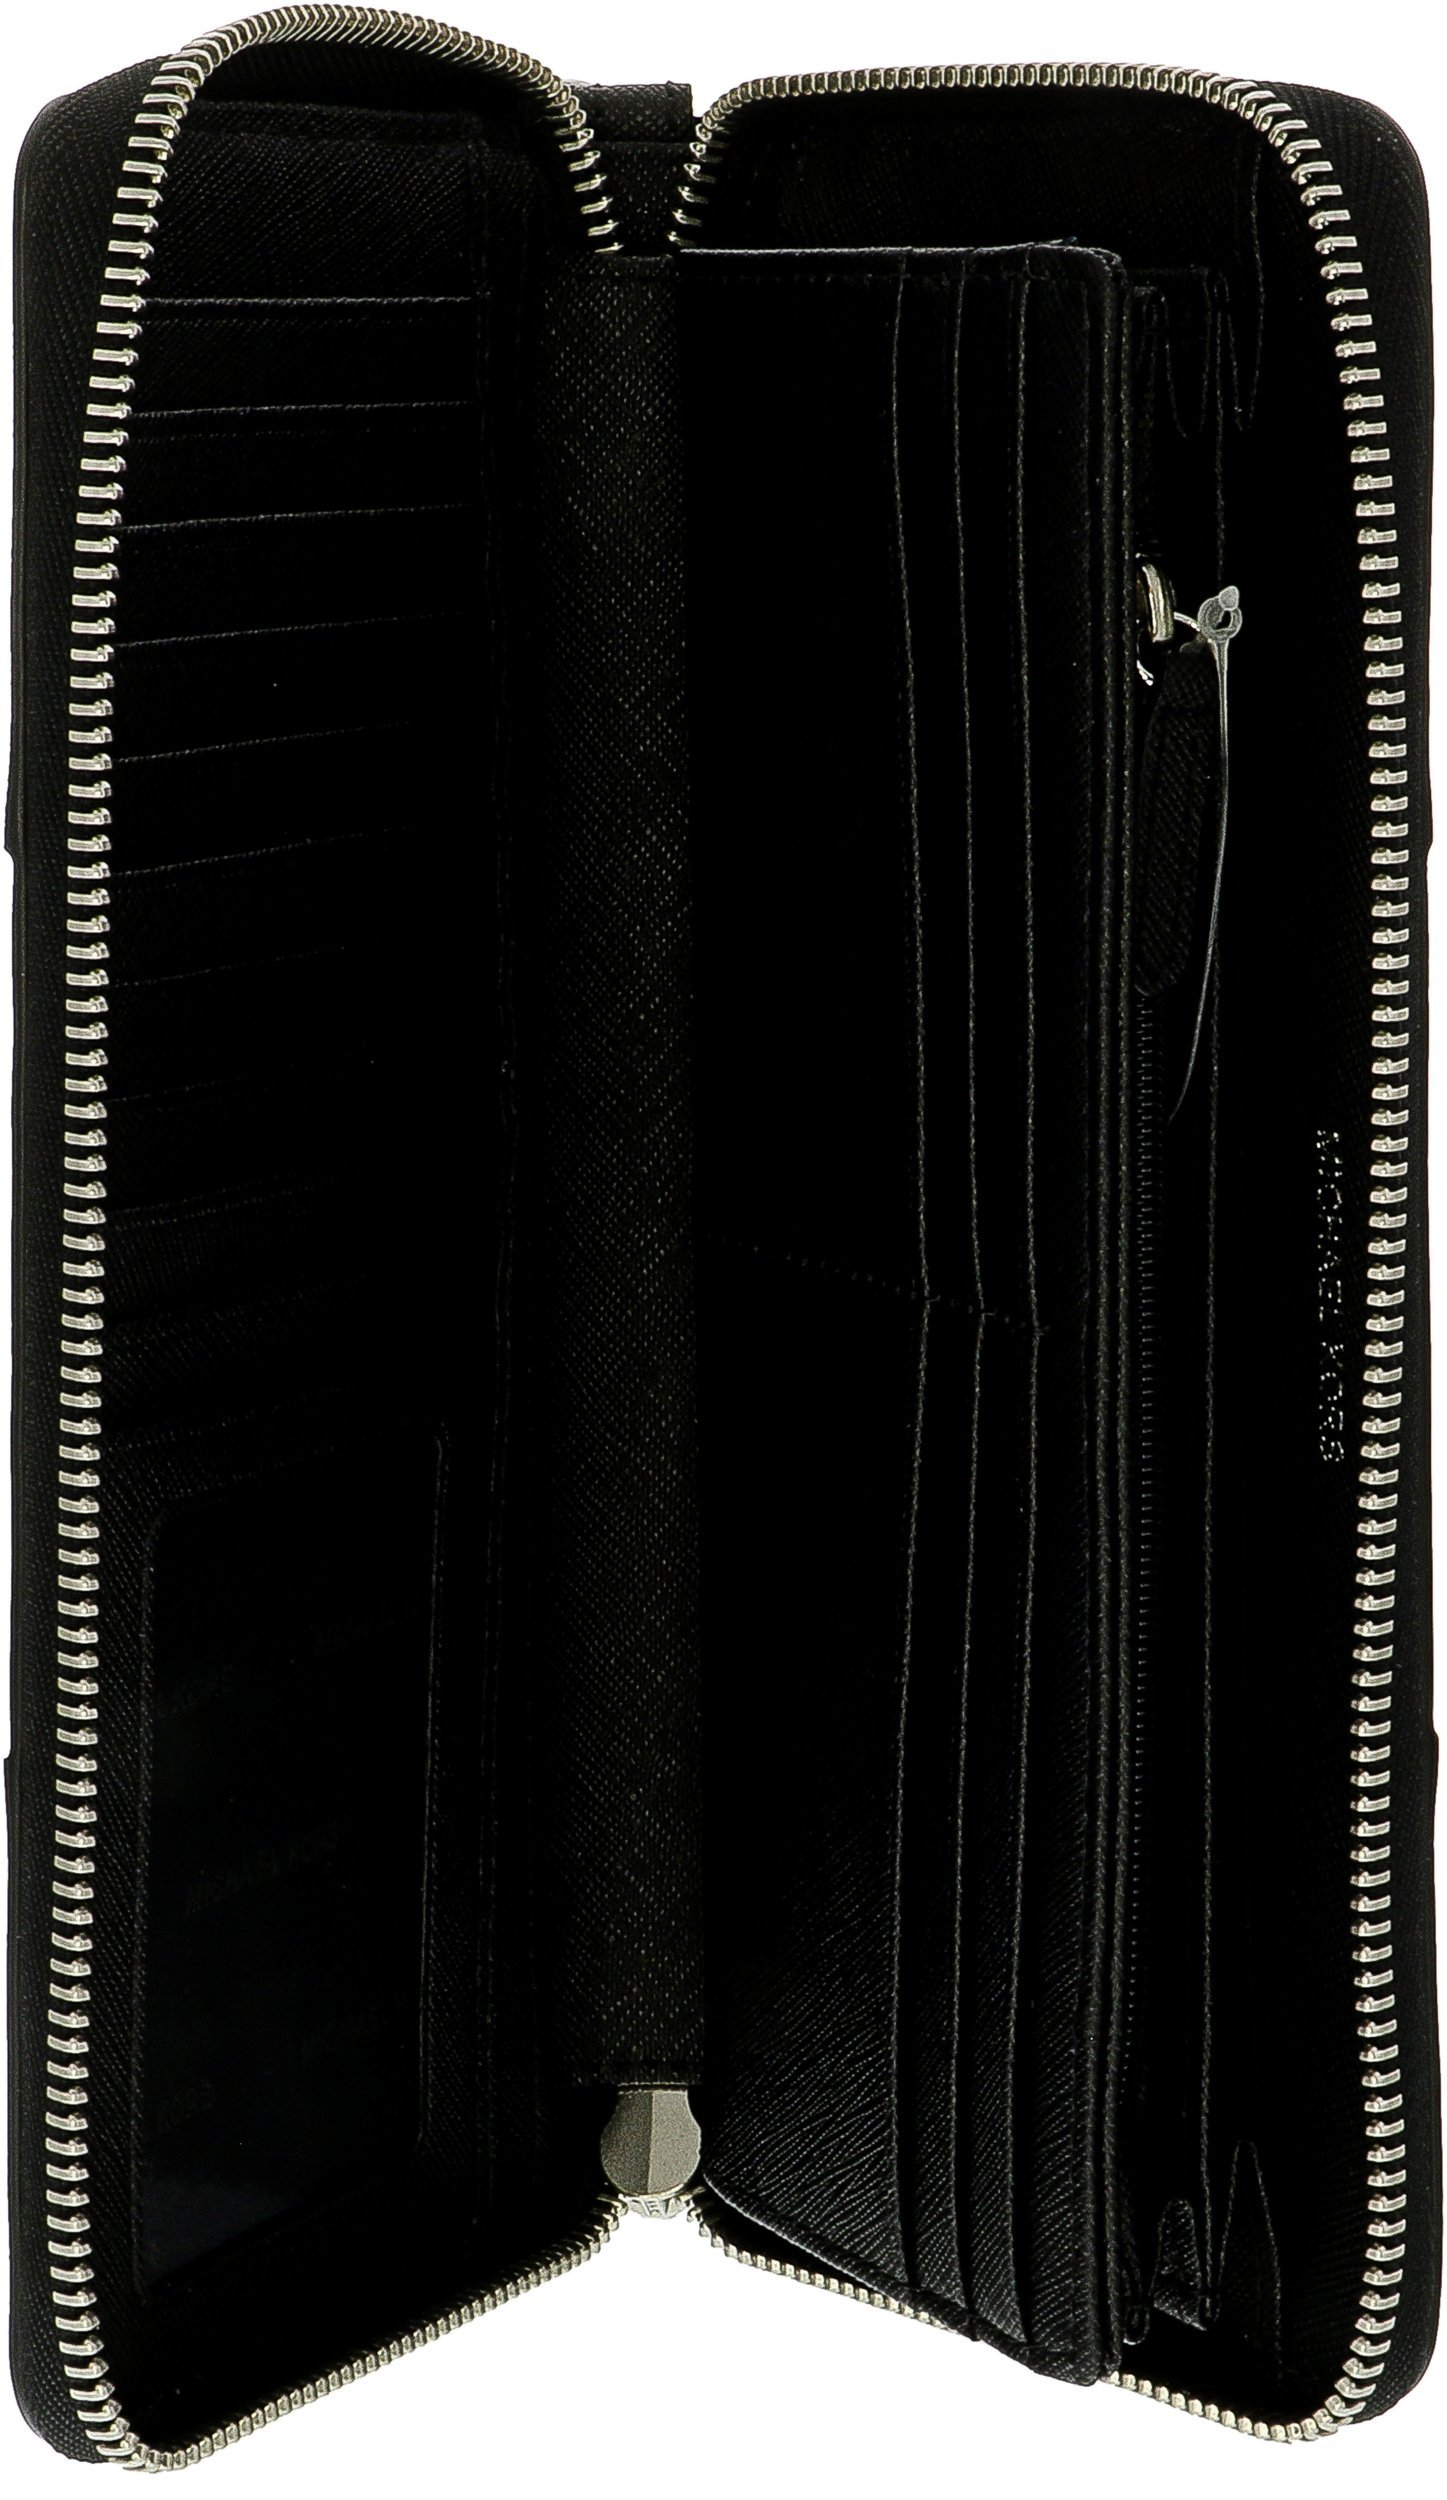 Michael Kors Money Pieces Travel Continental Wallet Black Leather by Michael Kors (Image #4)